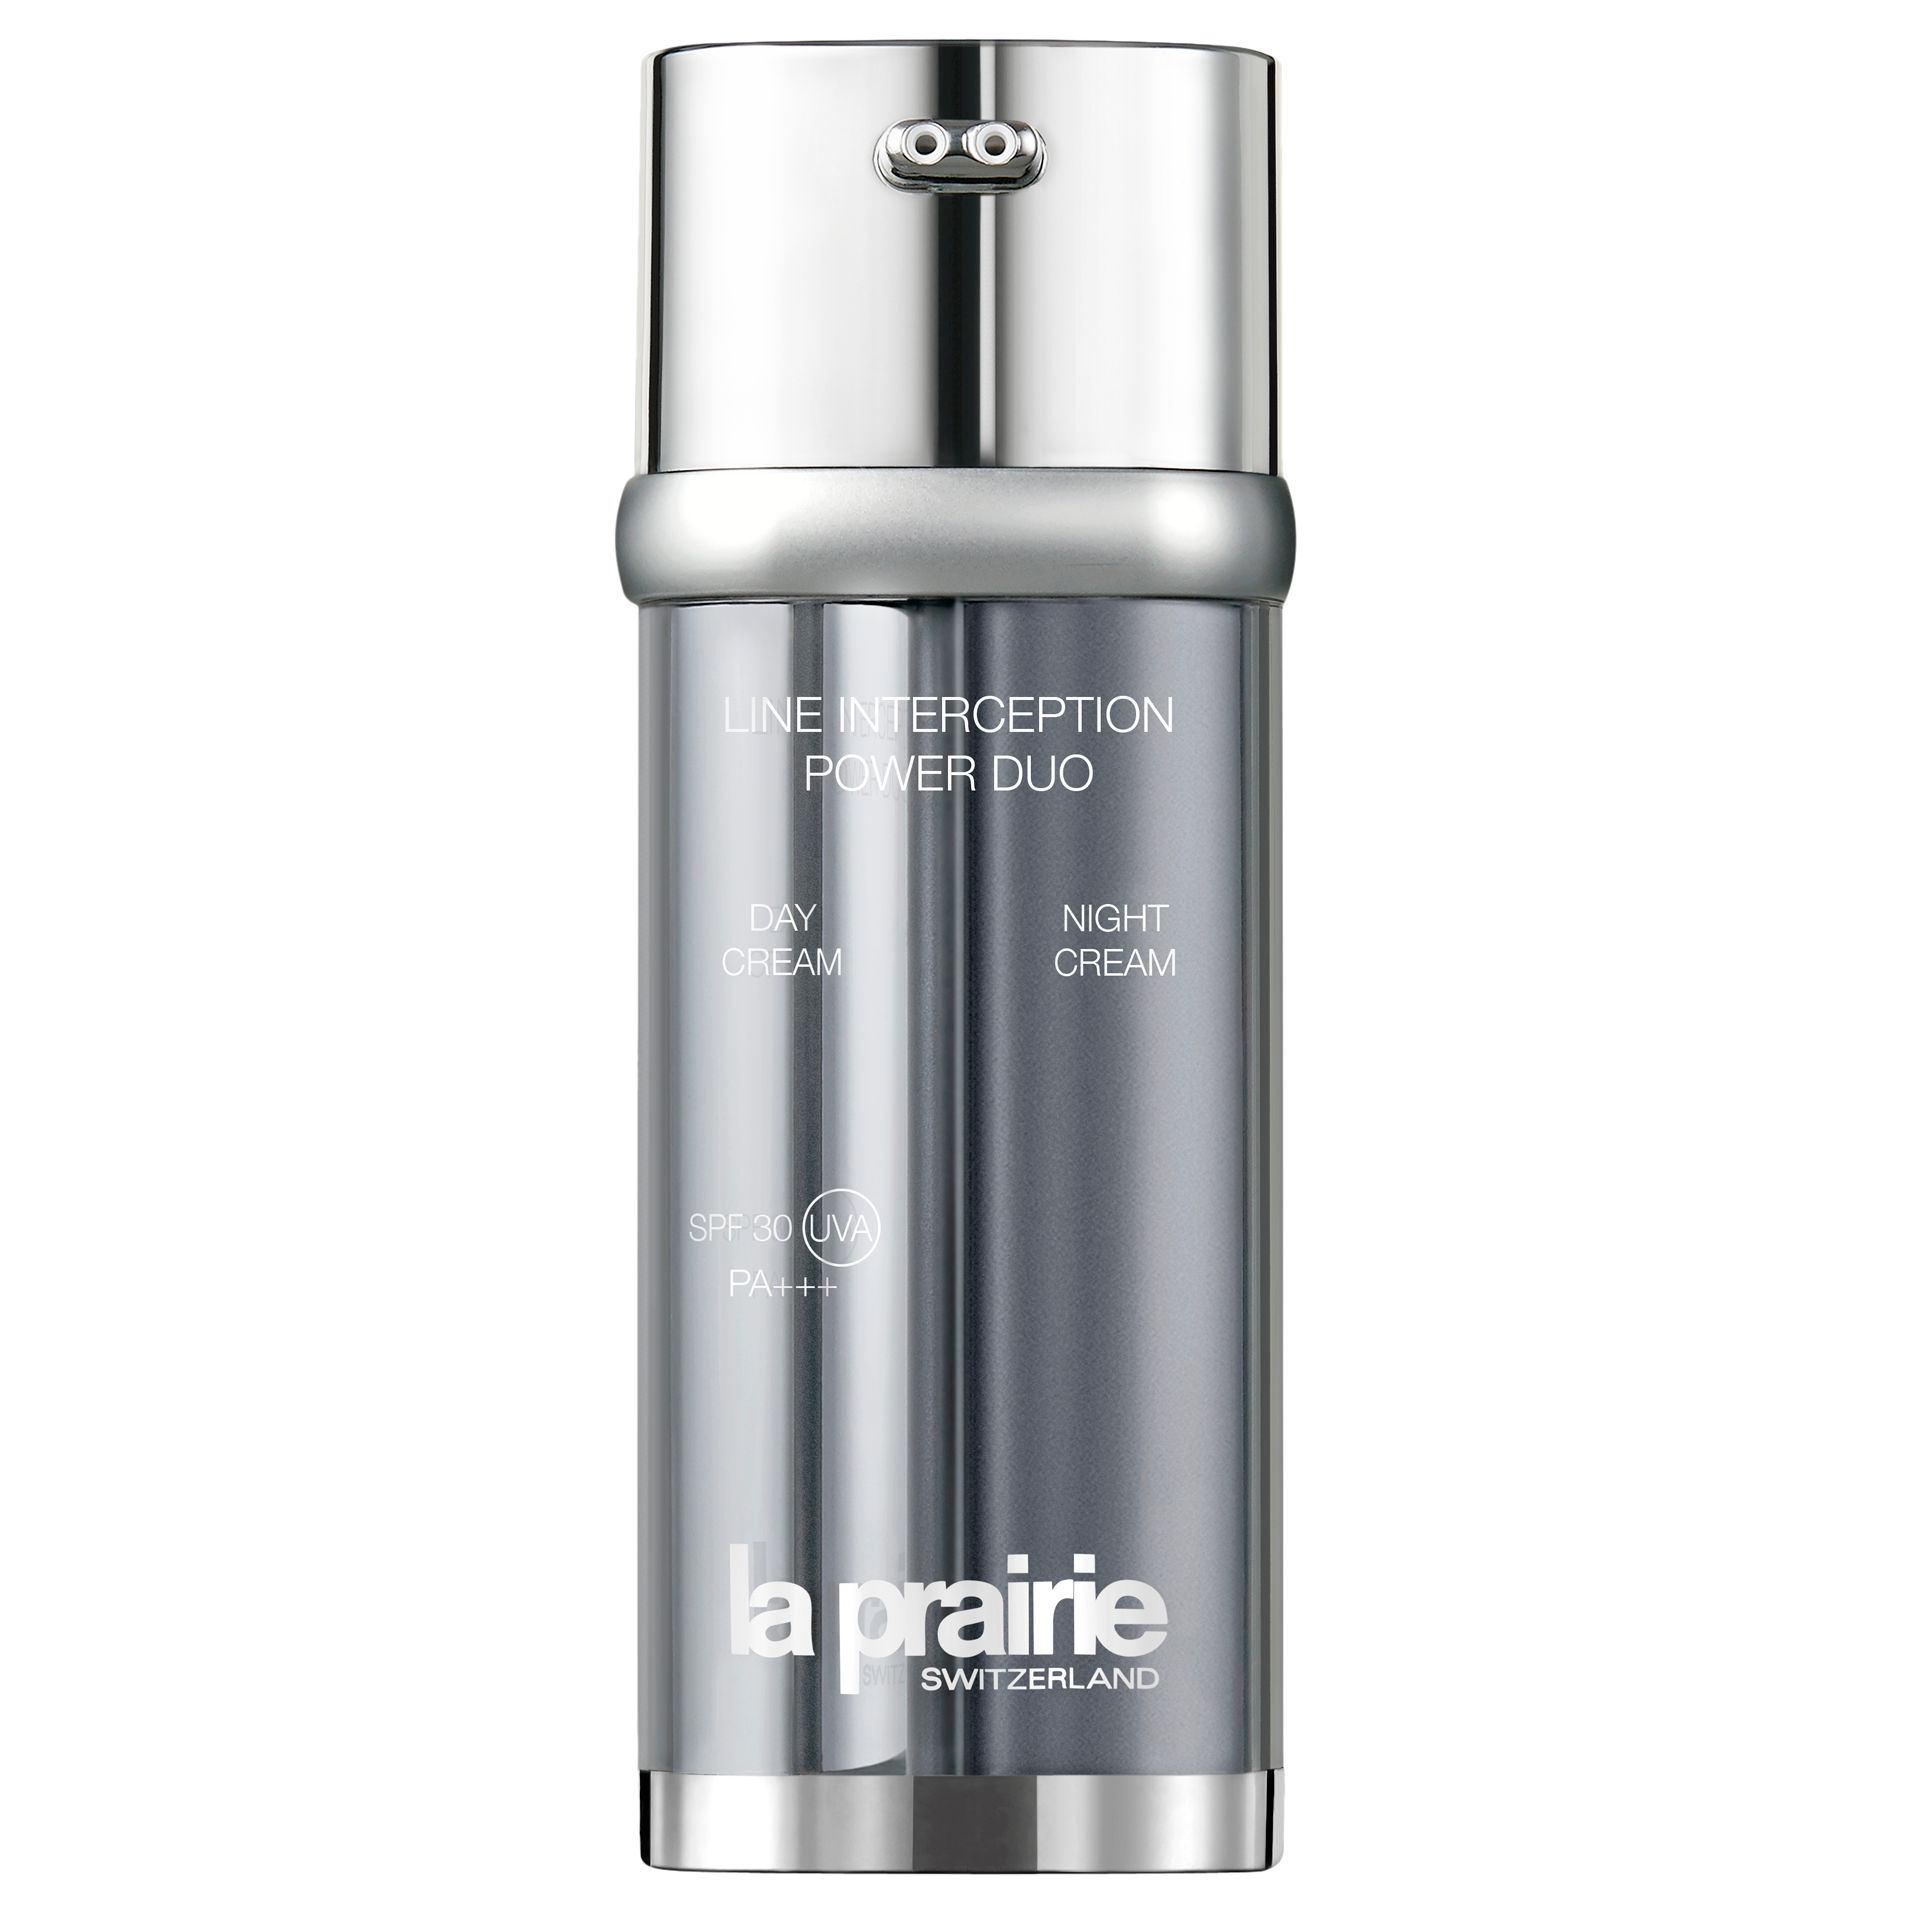 La Prairie La Prairie Line Interception Power Duo, 2 x 25ml